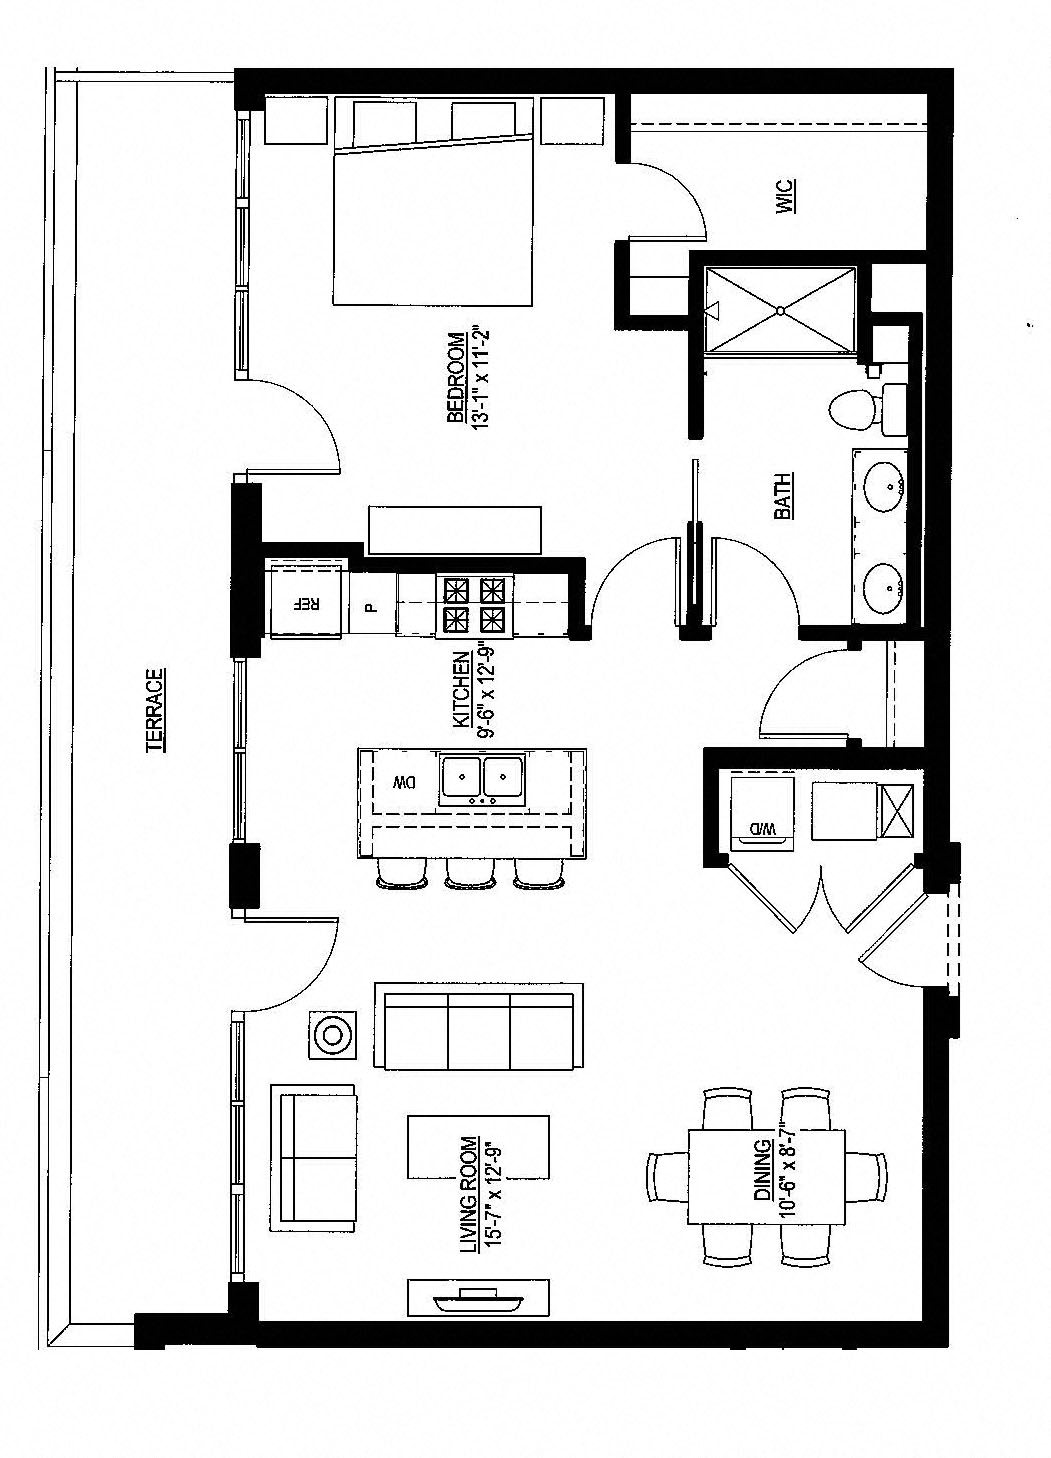 901sf- Penthouse w/Balcony Floor Plan 18